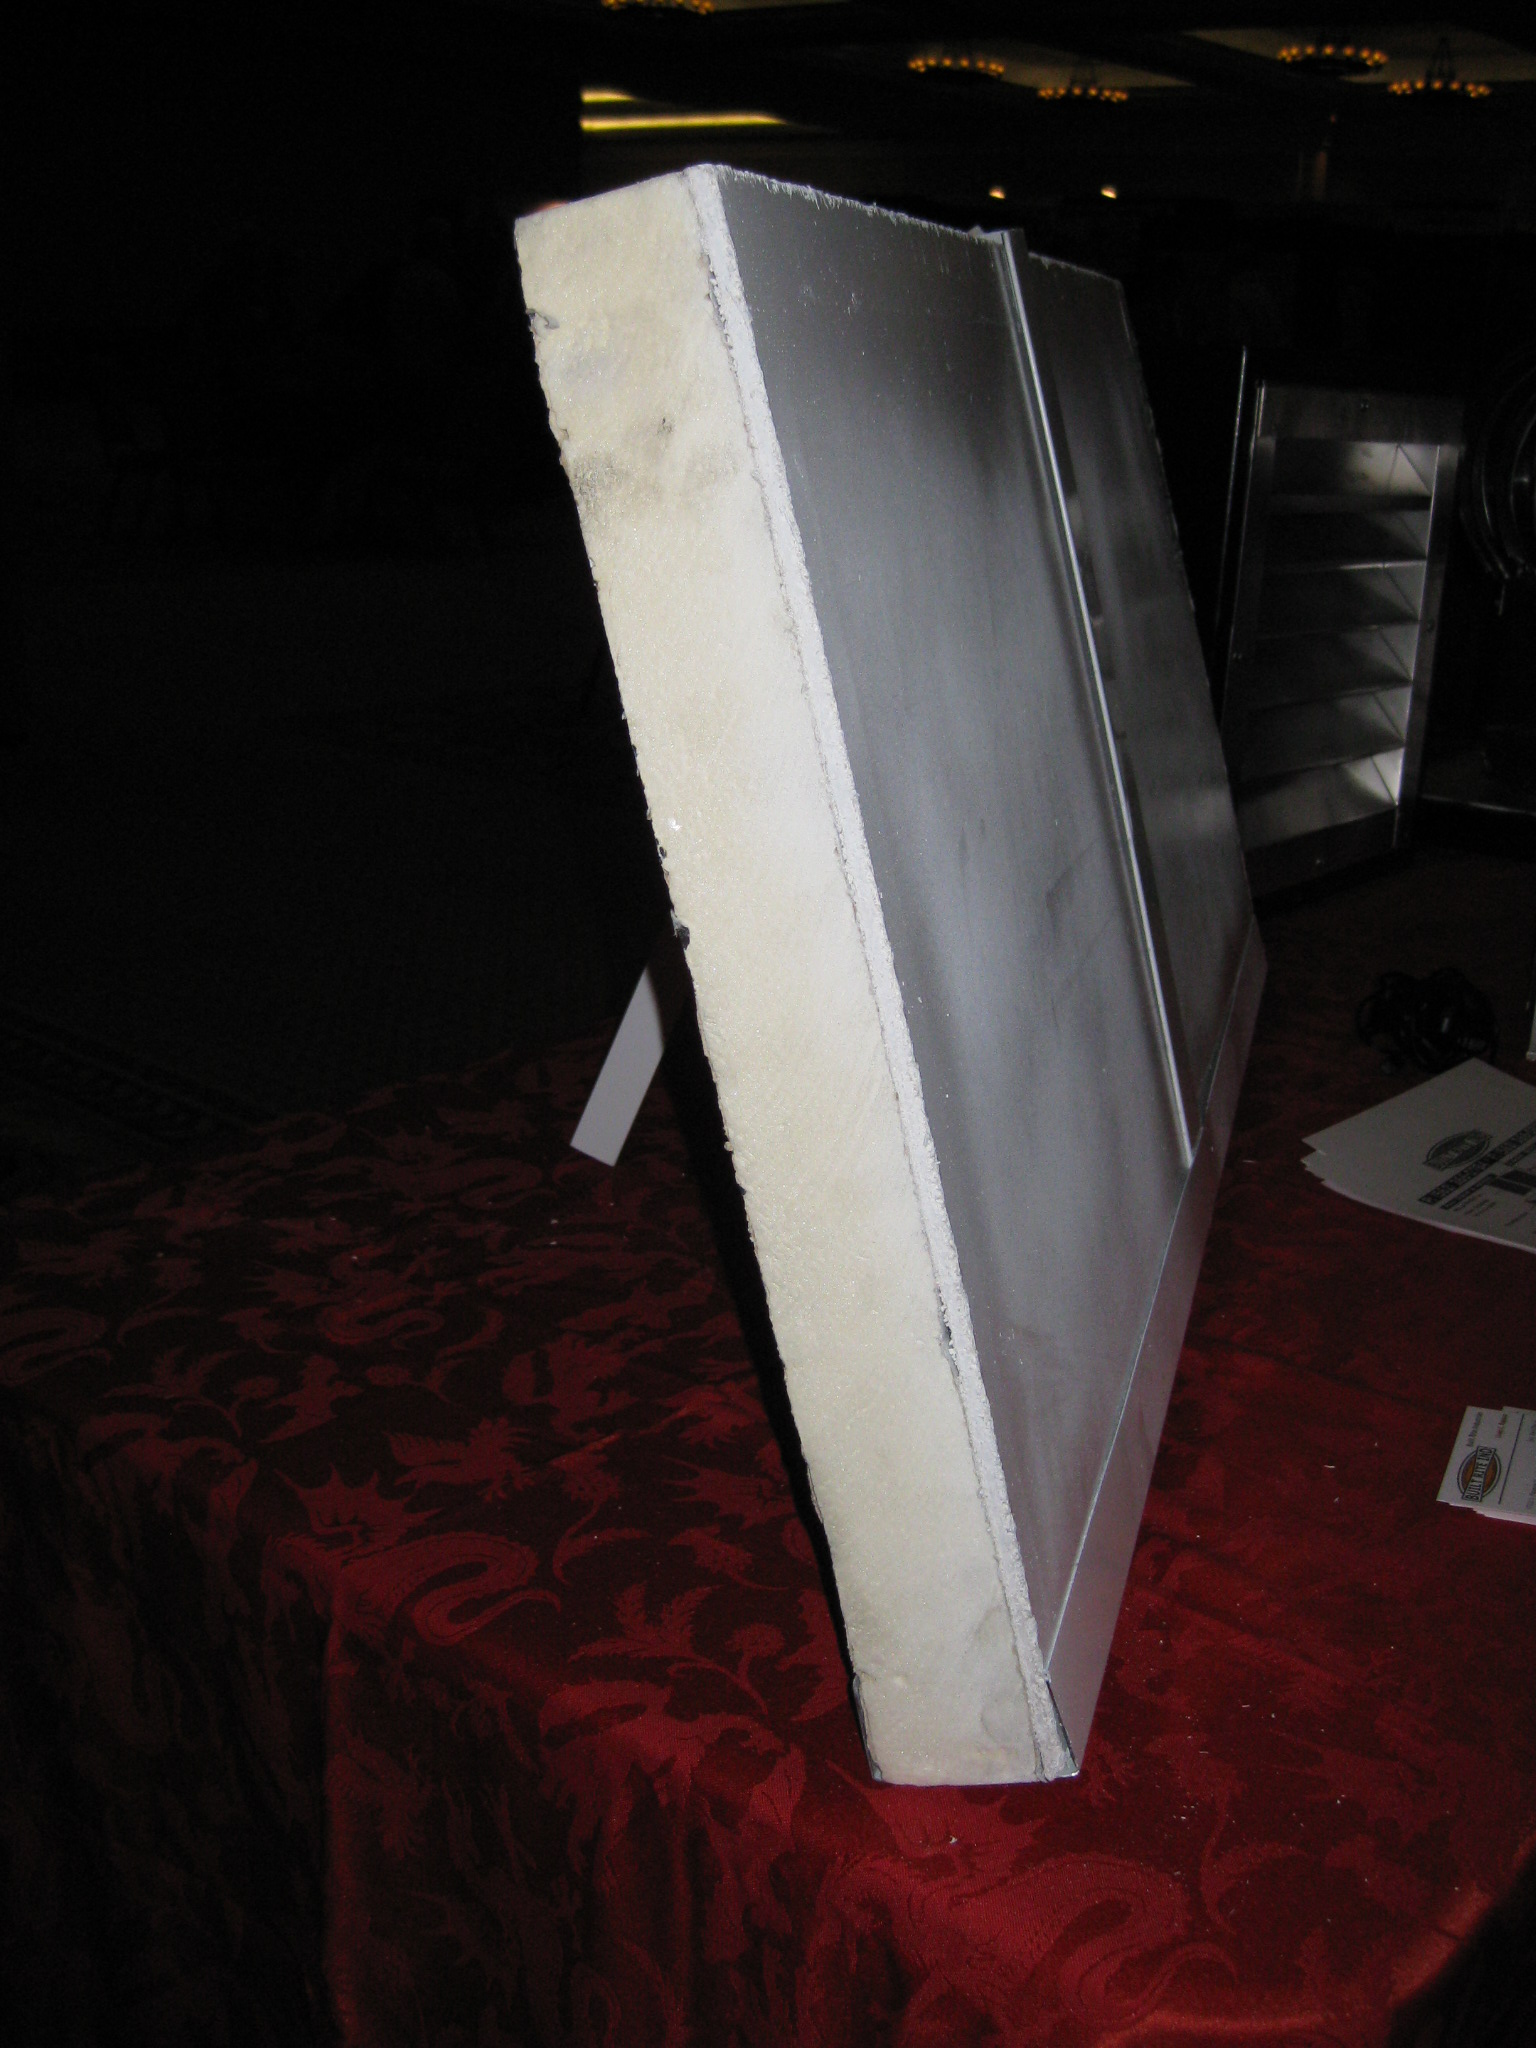 Profile of foam board insulation